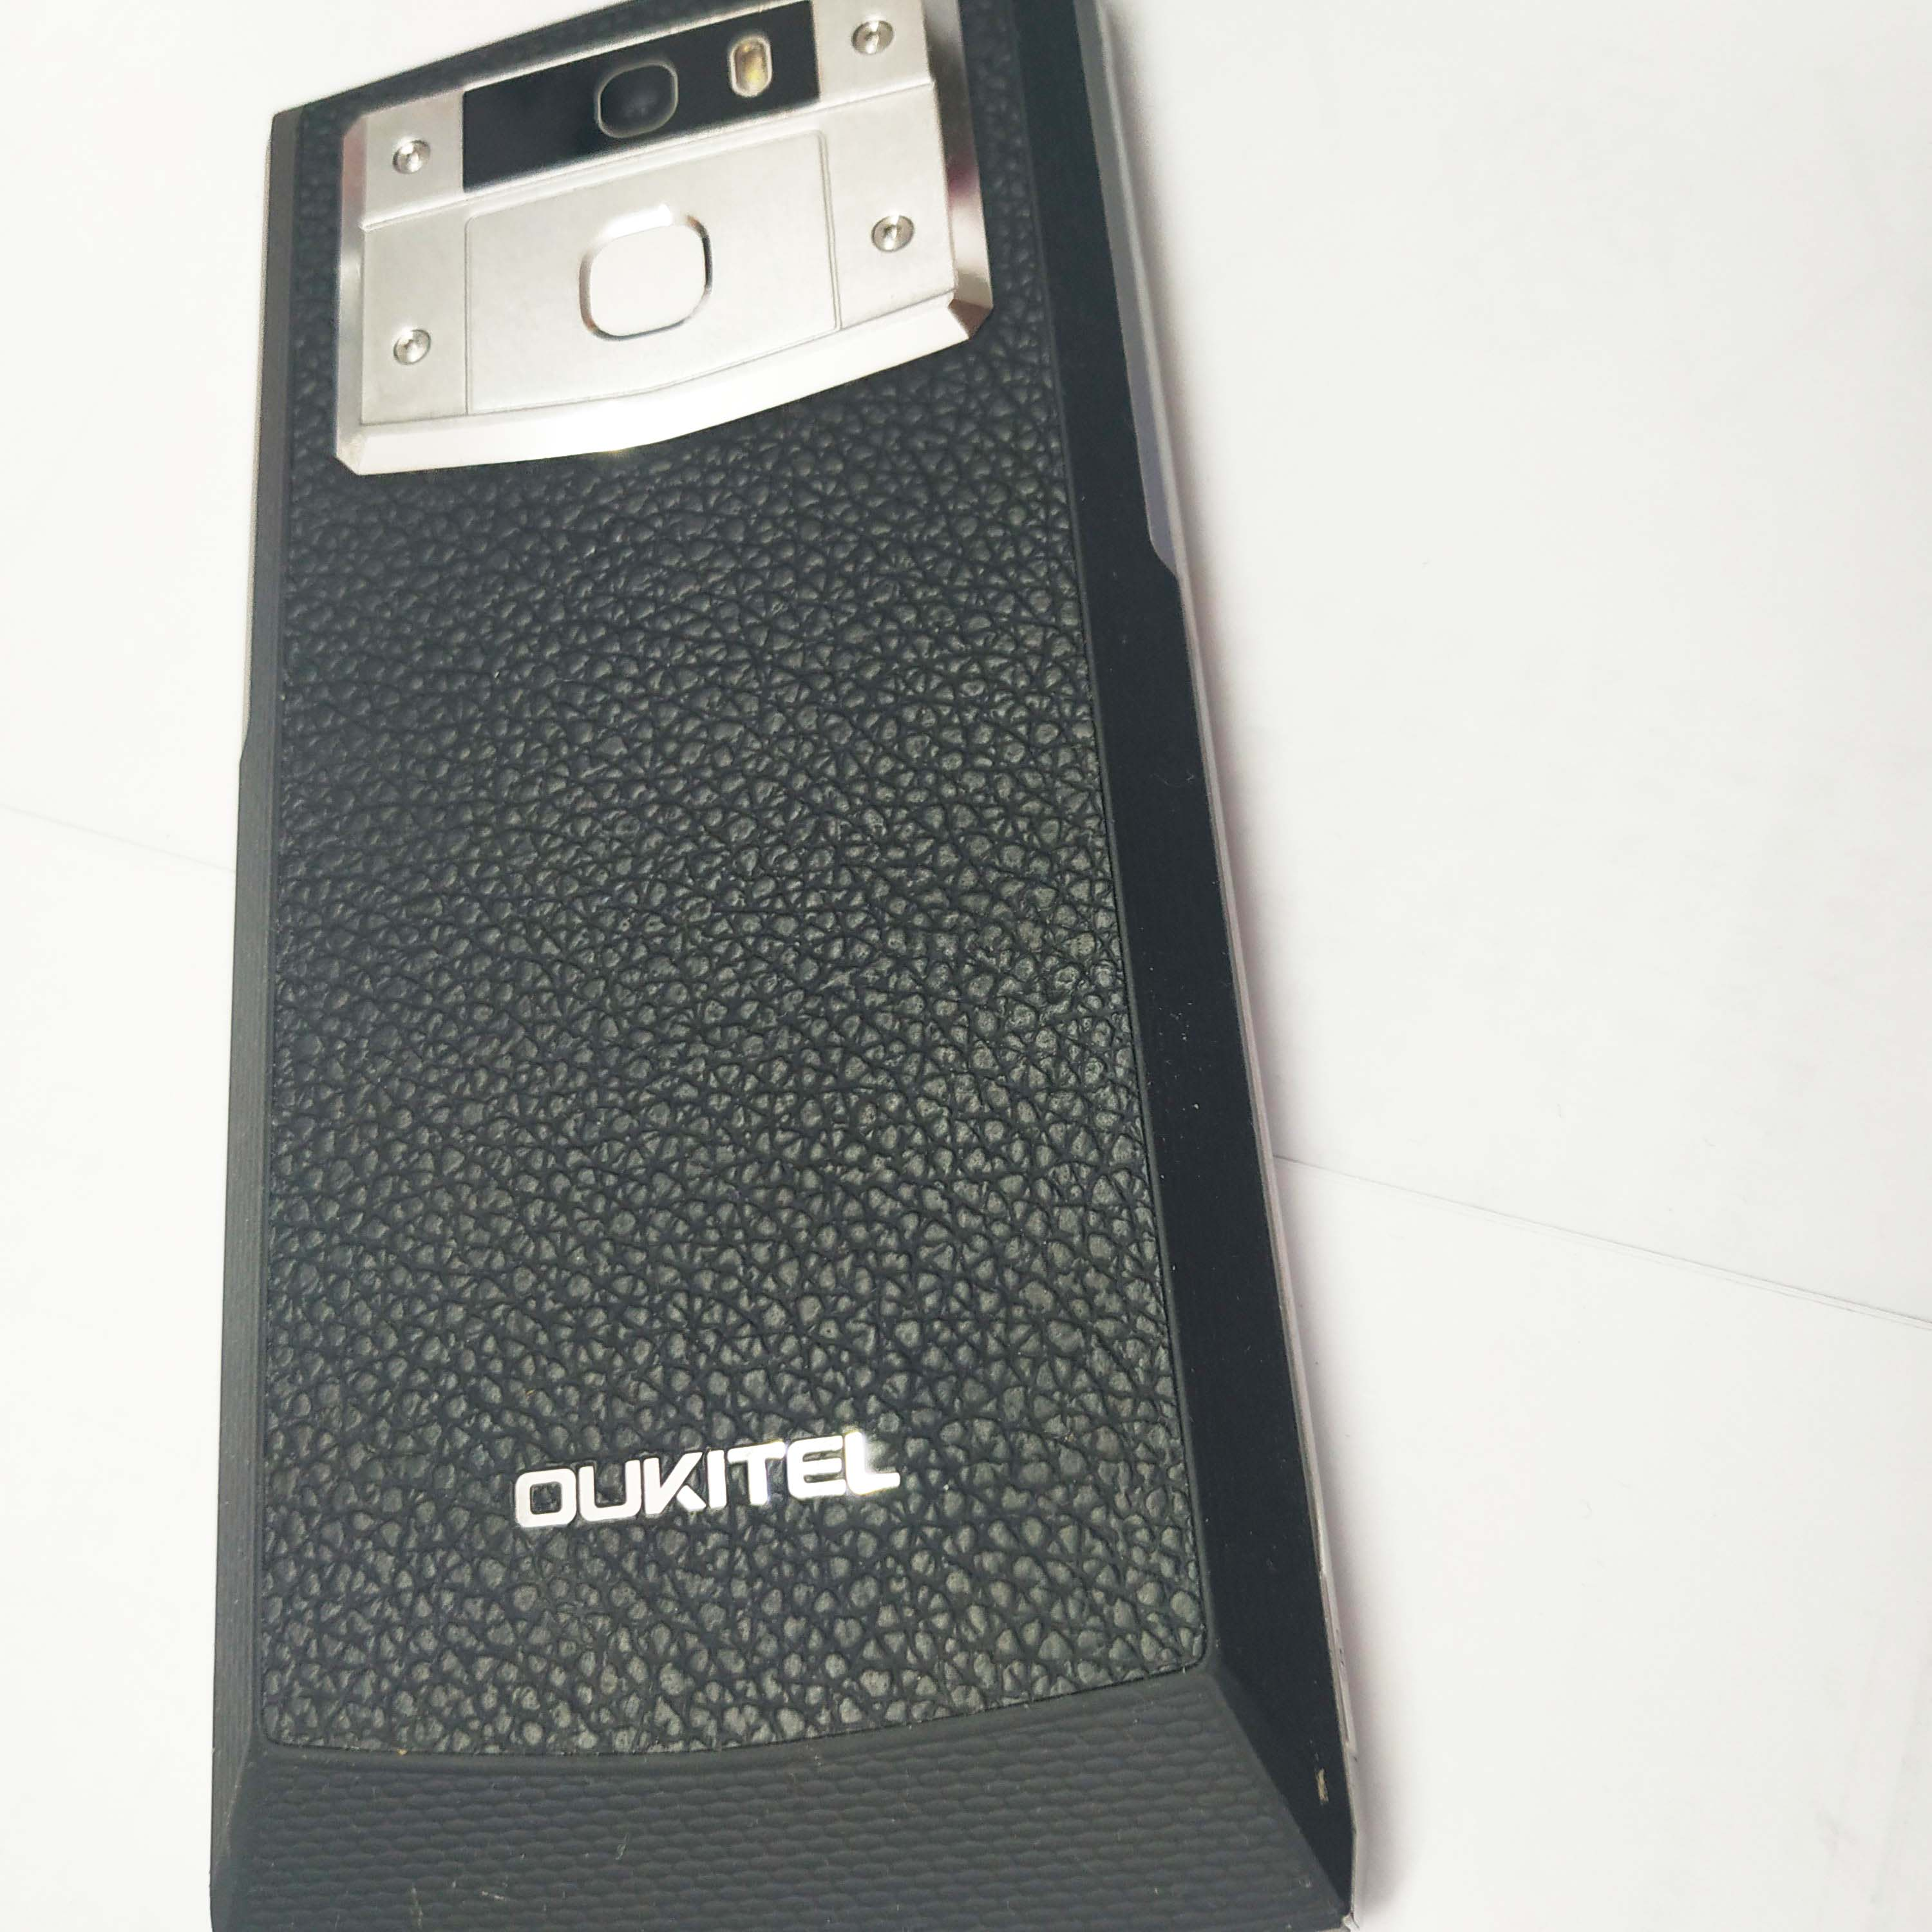 OUKITEL K10000 Mix 2G+16G Smartphone,One Complete Machine,Used,5.5 Inch Mobile Phone 10000mAh Battery, LCD Screen+Motherboard enlarge